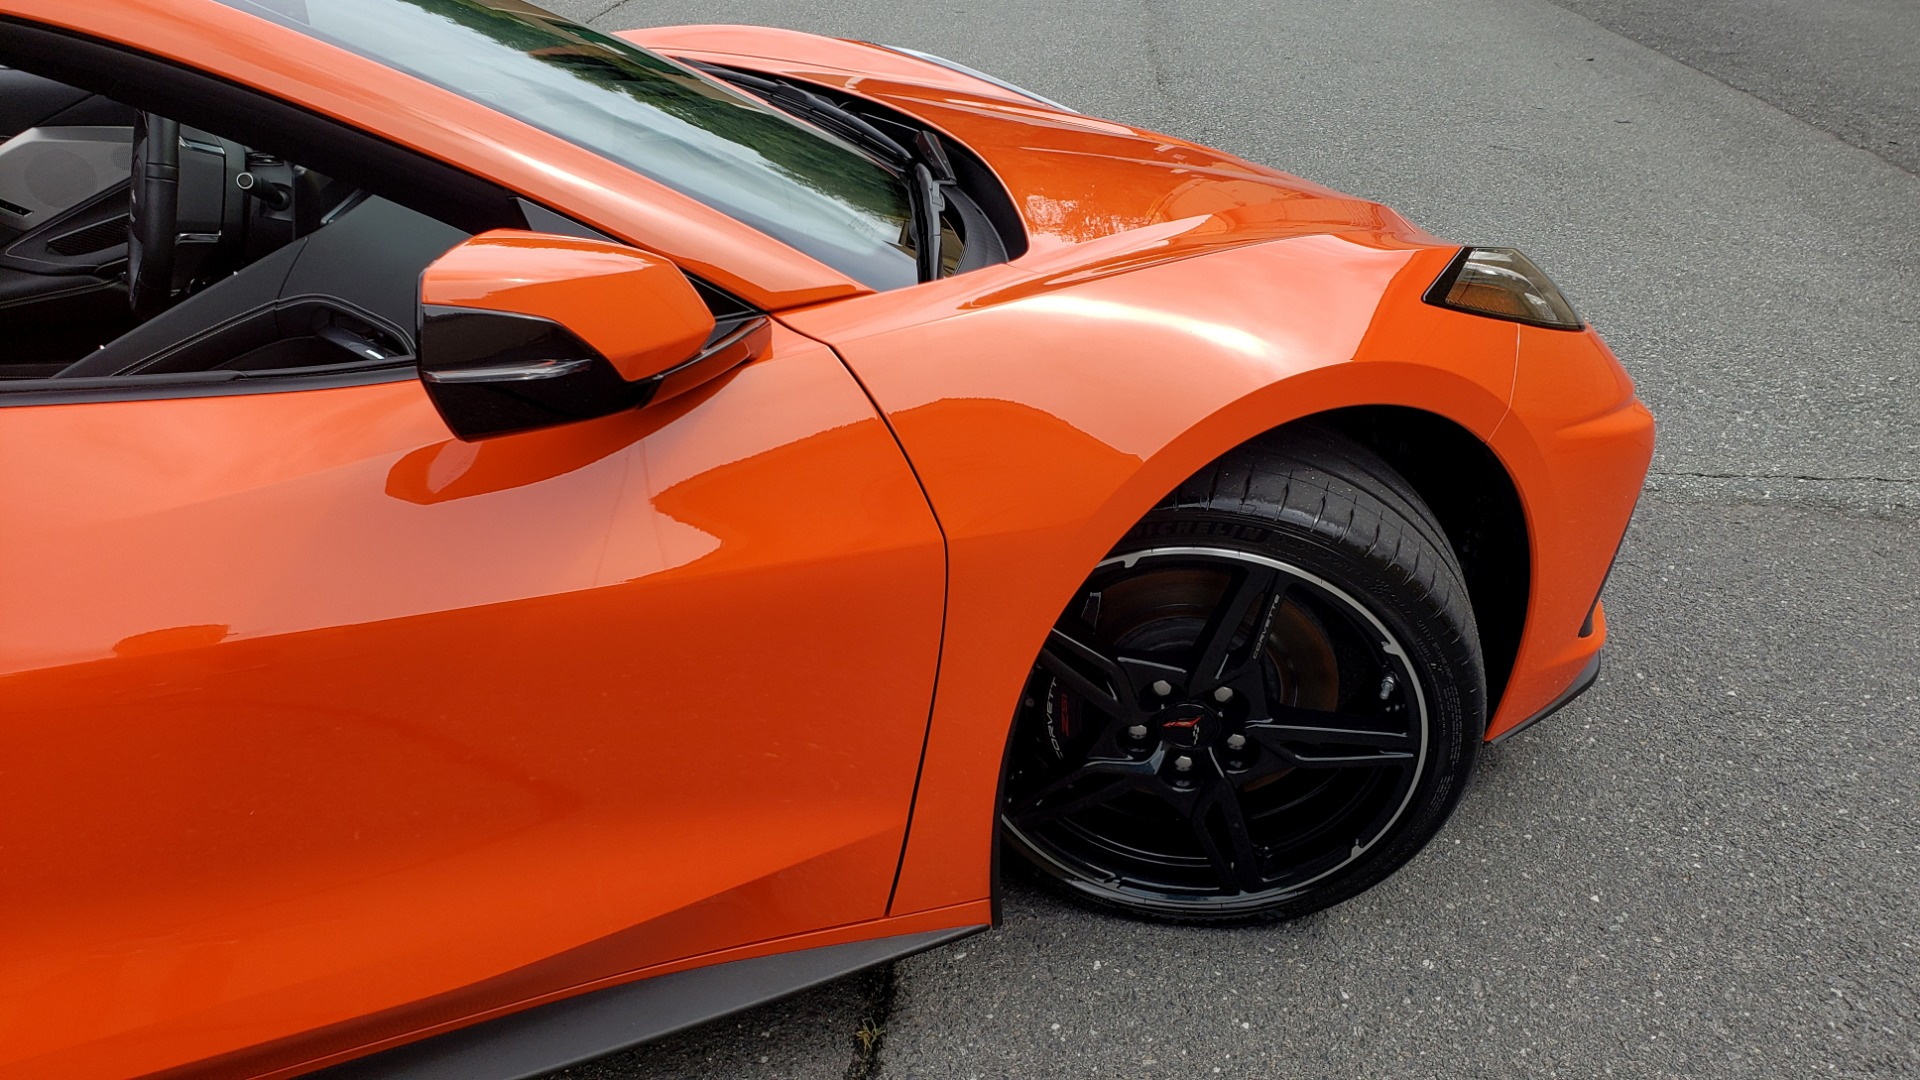 Used 2020 Chevrolet CORVETTE C8 STINGRAY 2LT / 6.2L V8 / 8-SPD AUTO / NAV / BOSE / REARVIEW / DATA RECOR for sale Sold at Formula Imports in Charlotte NC 28227 79